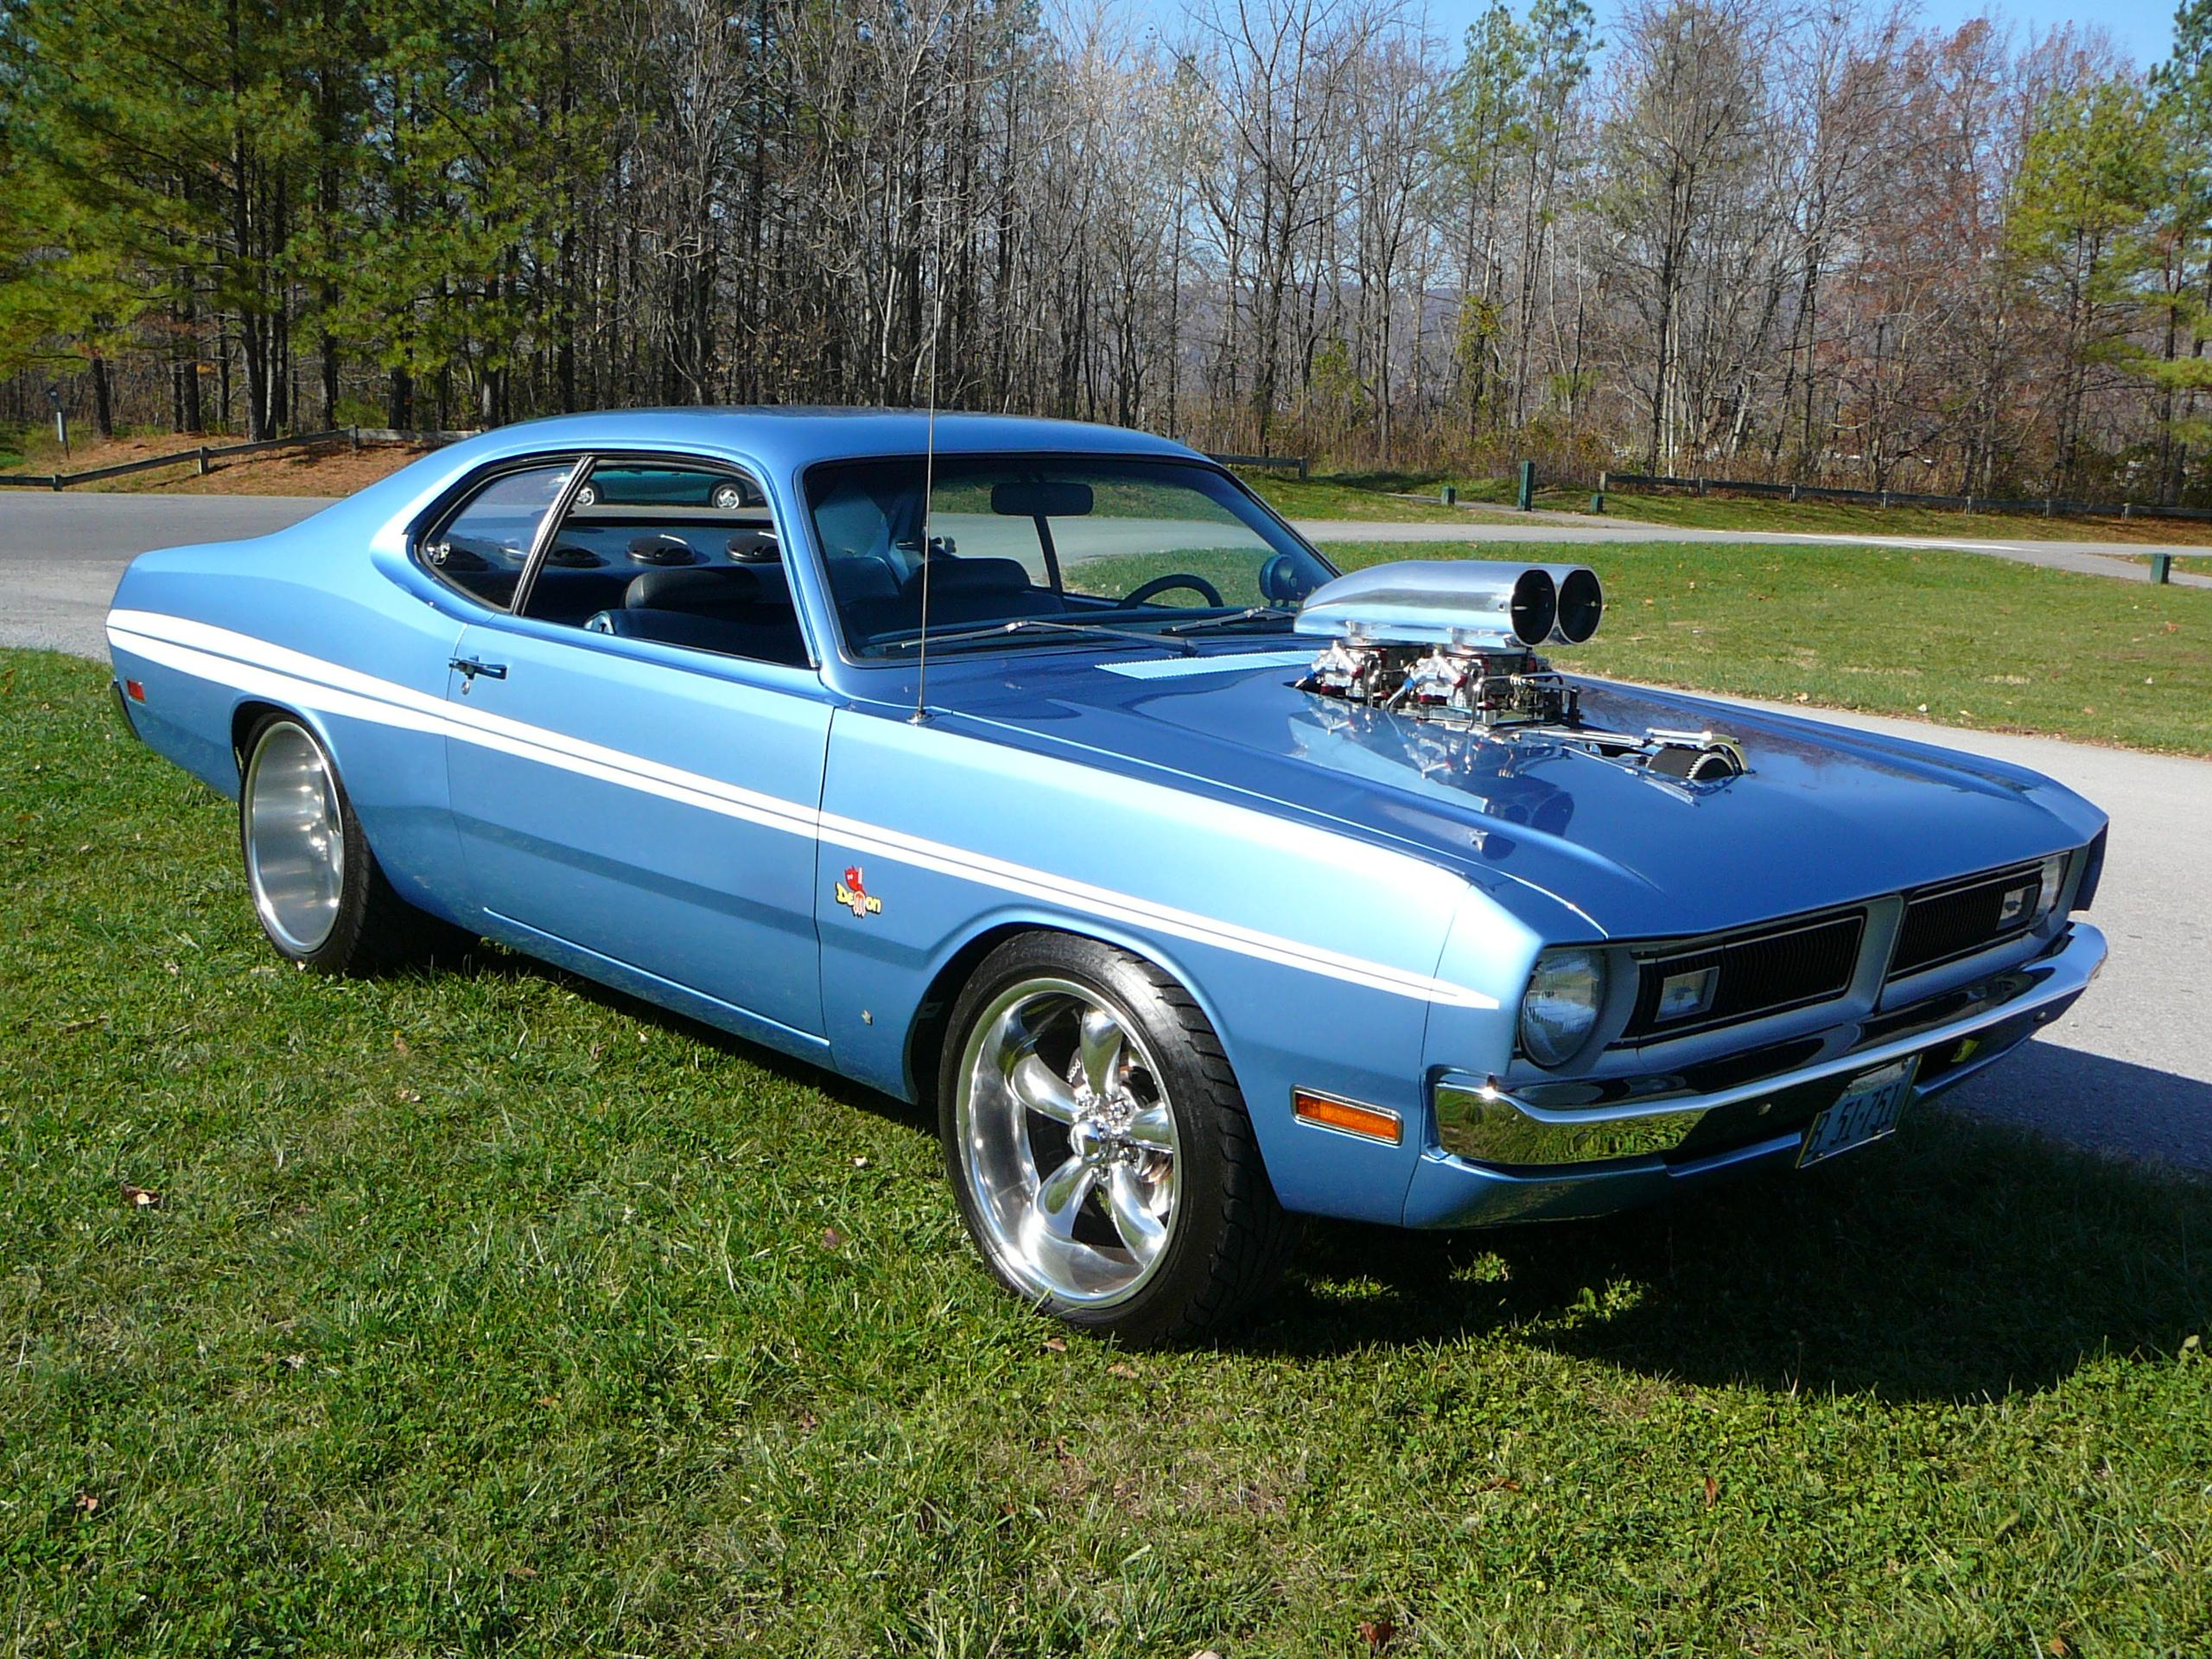 Dodge Demon muscle classic hot rod rods 340 engine j wallpaper 2560x1920